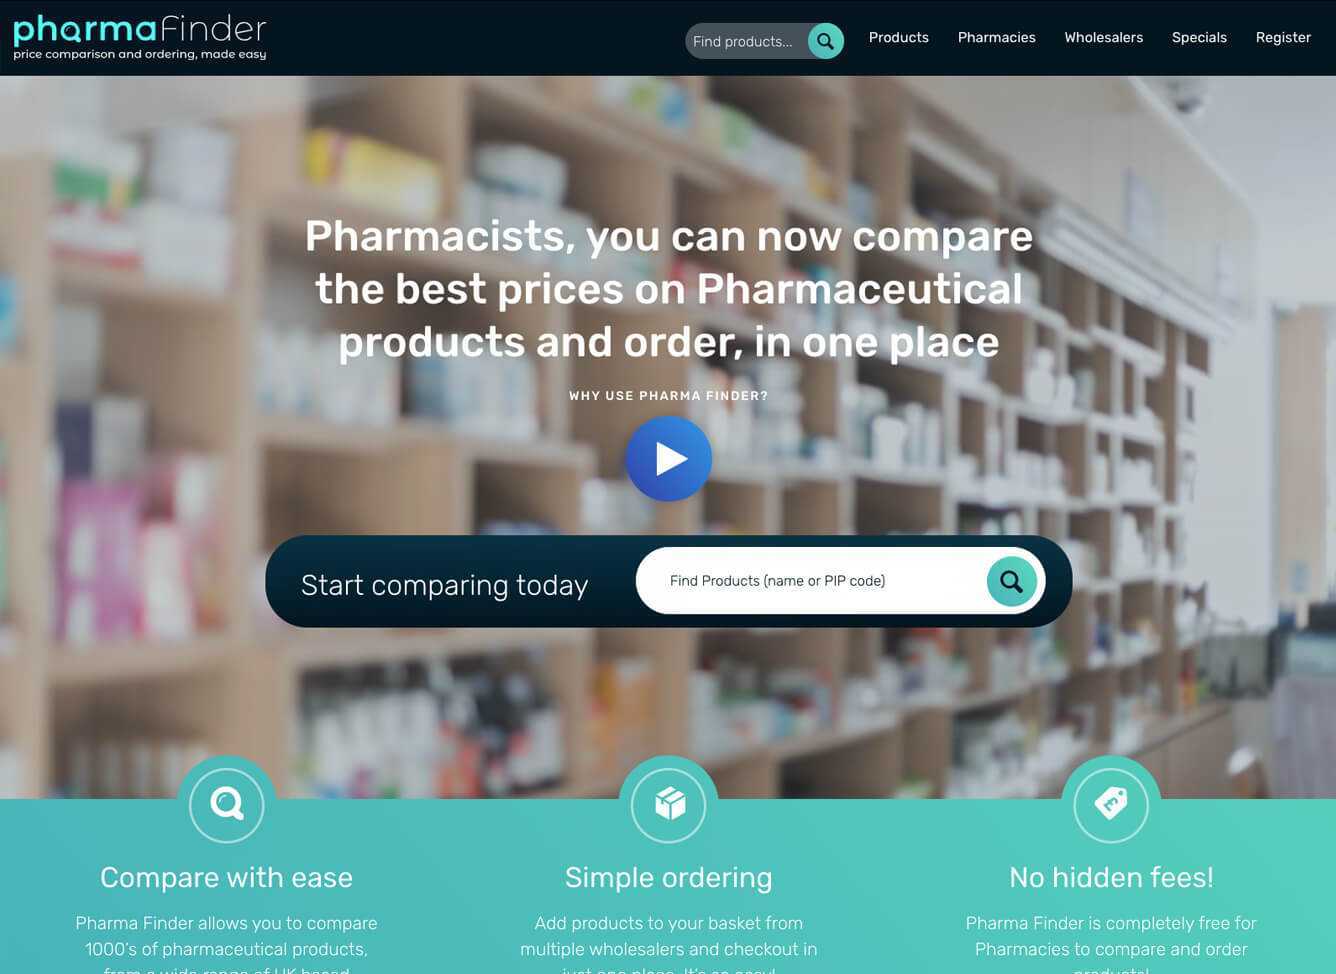 pharmafinder comparison website